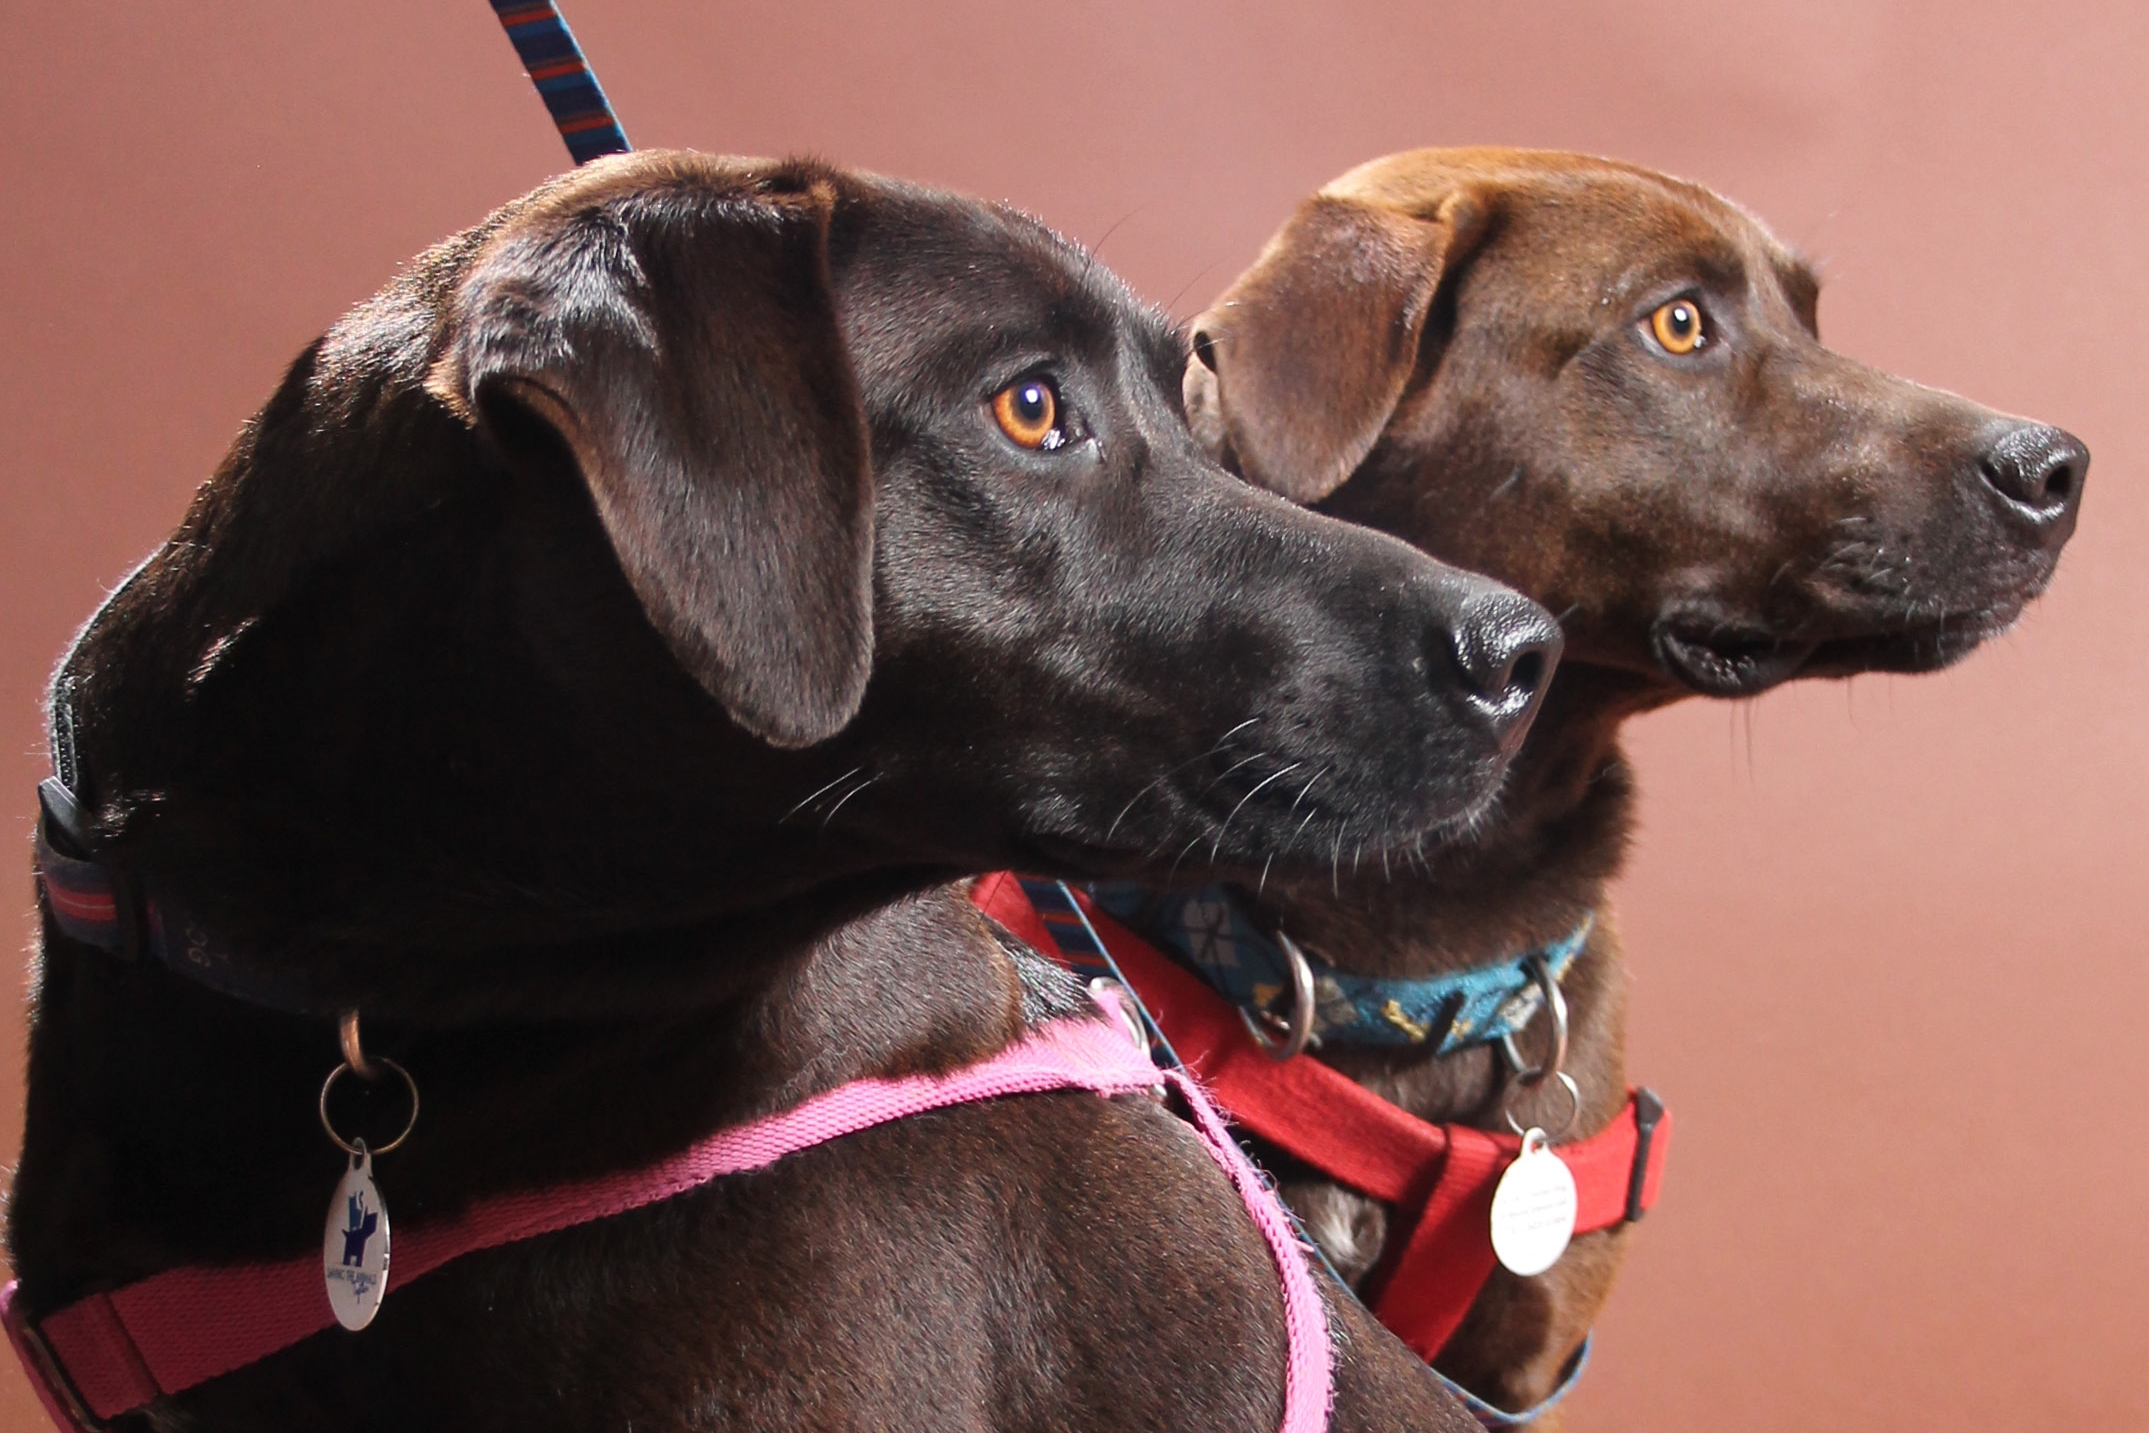 Dixie and Suzie are in need of a new home after their owner was deployed. They are bonded sisters and will only be adopted together.